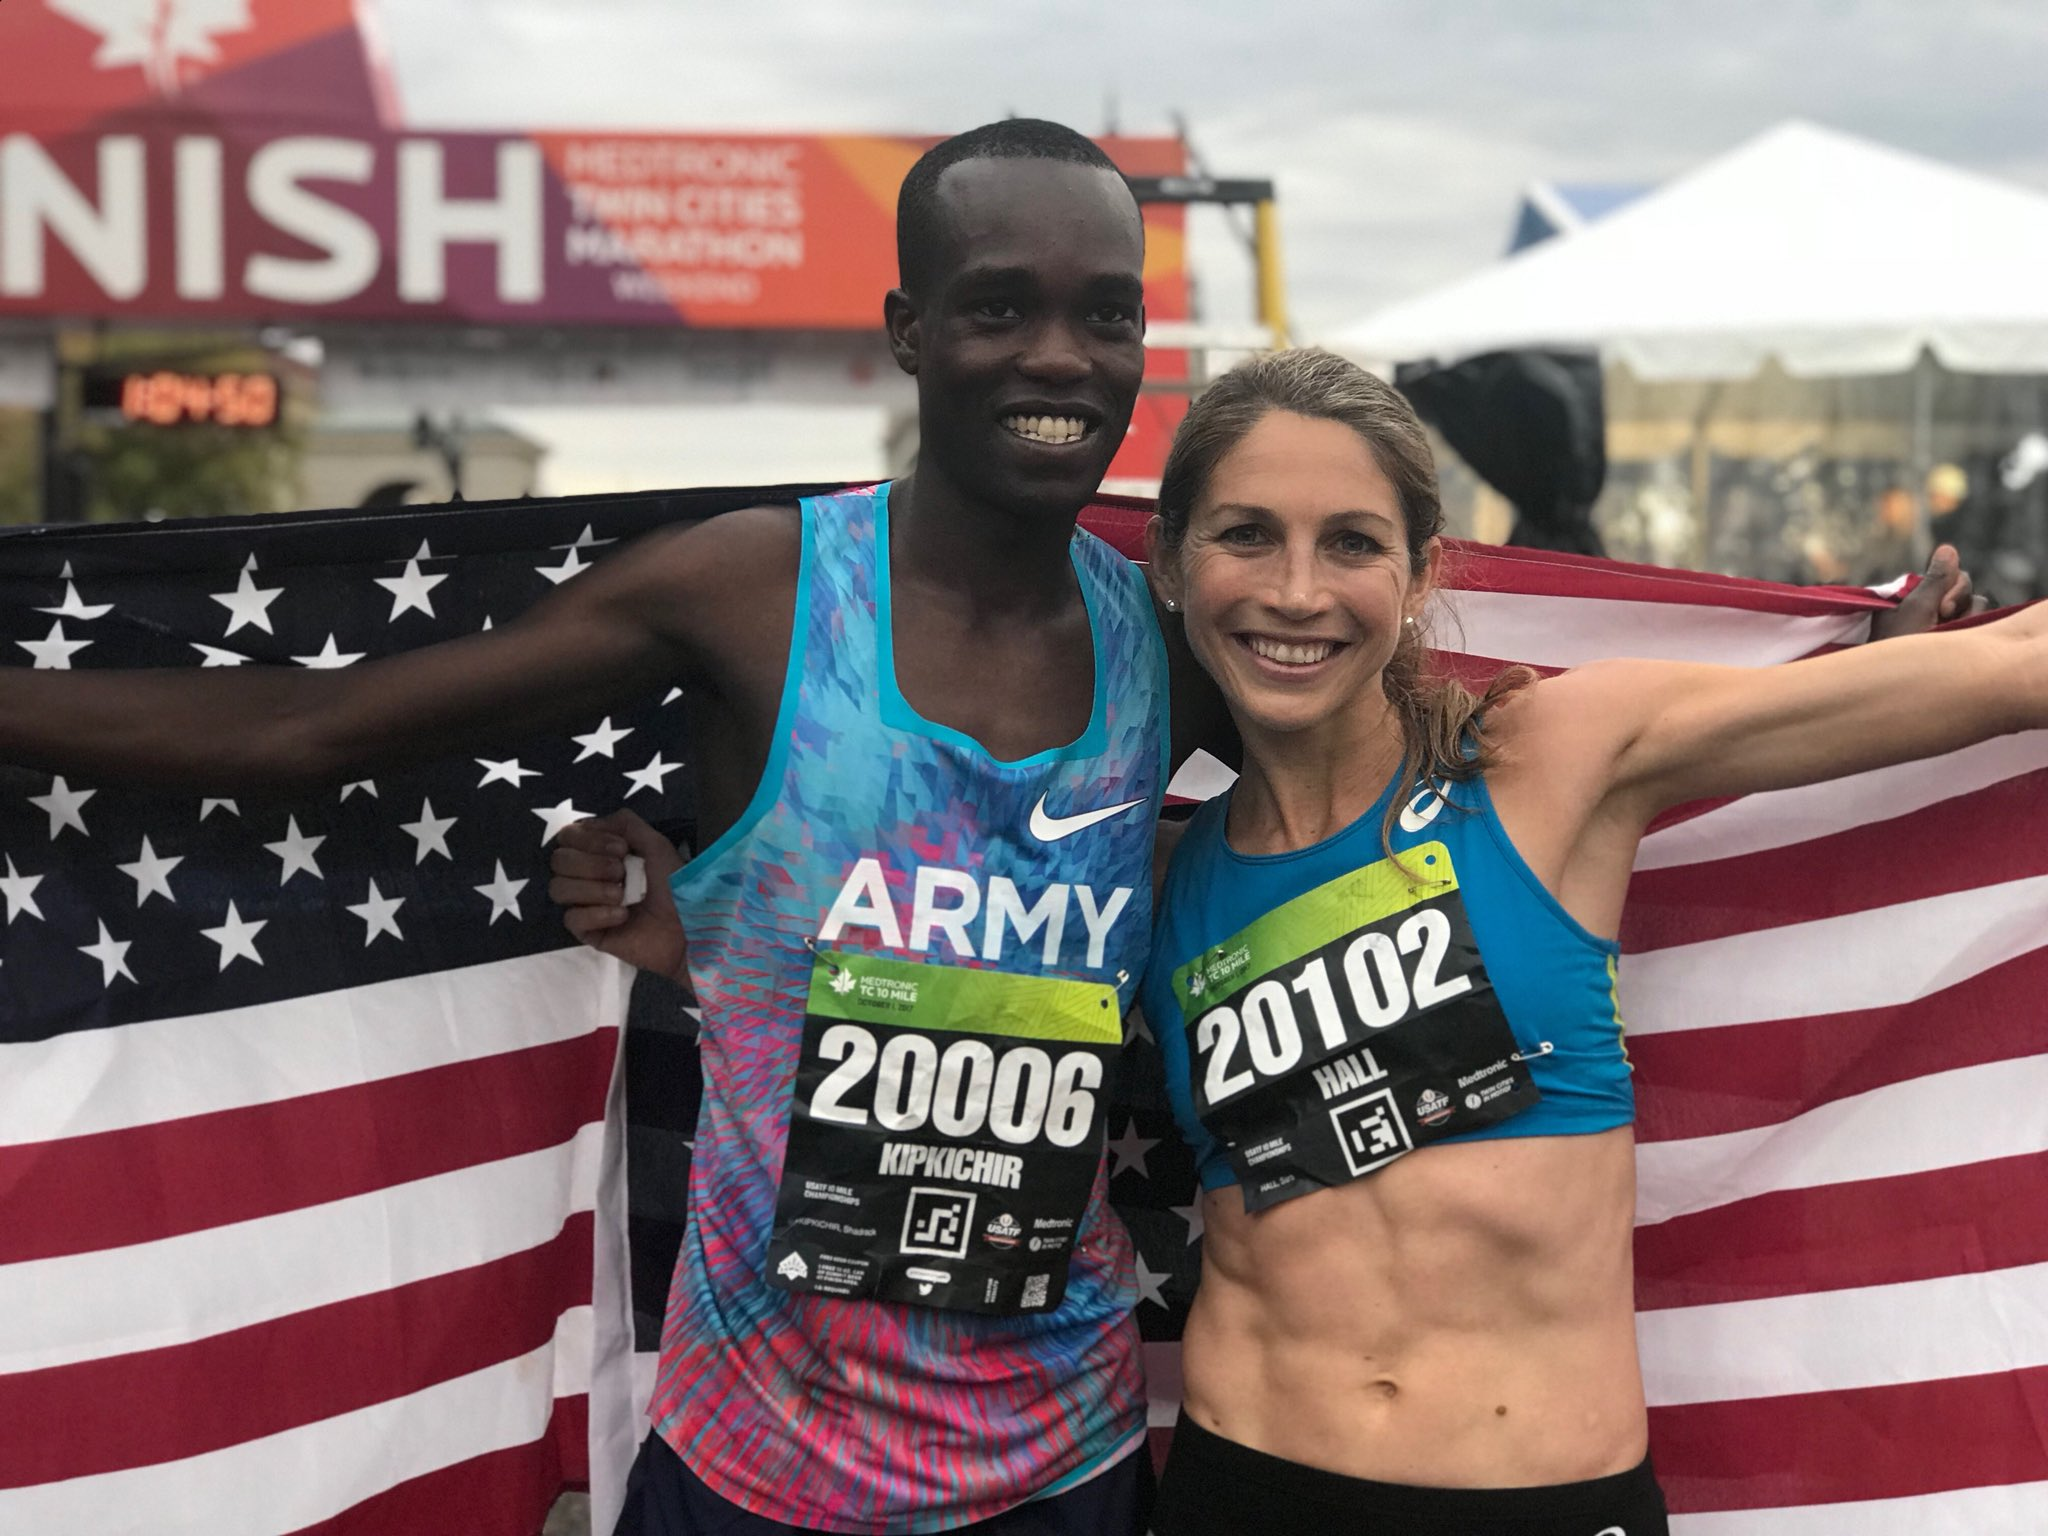 Congratulations to 2017 #USATF 10 Mile Champs winners @ShadrackKipch16 and @SaraHall3! #USARC https://t.co/eDQFdl7yIc